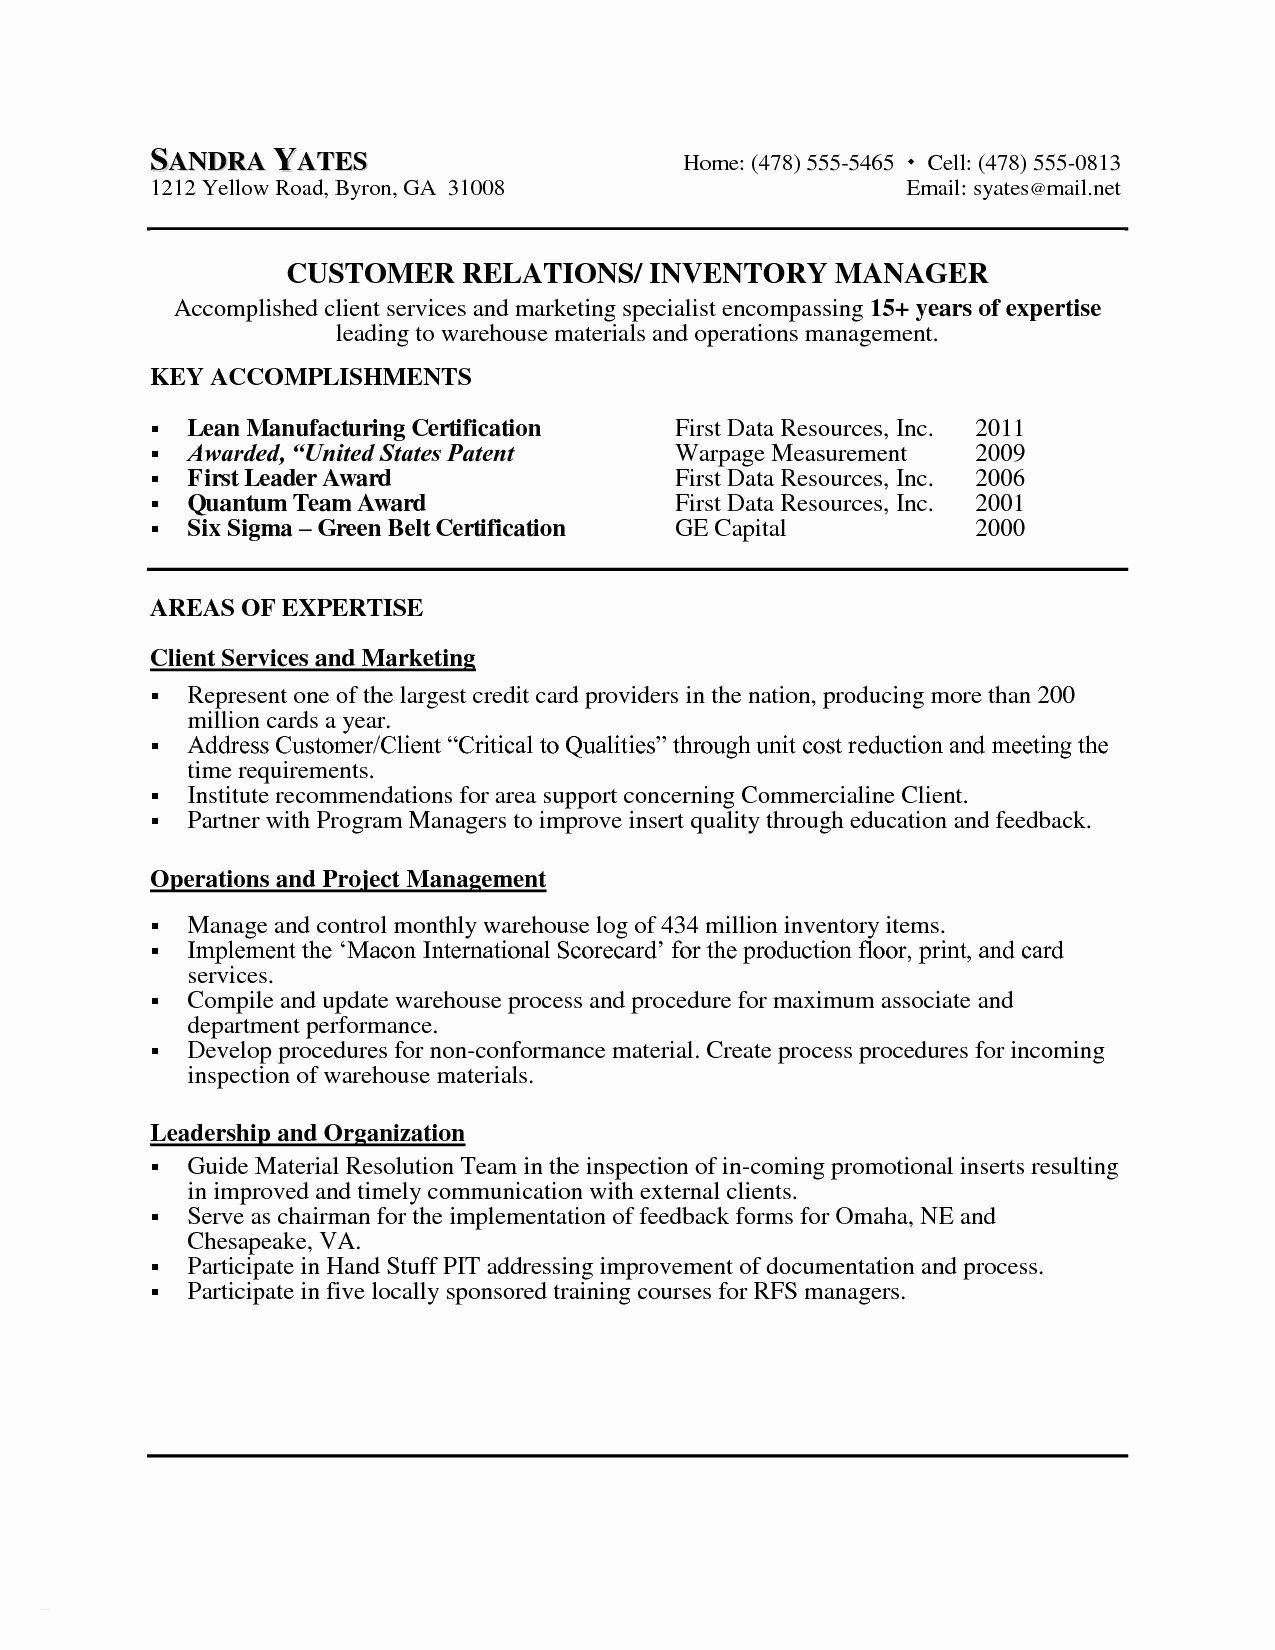 Example Of College Resume - Help Writing A Resume New College Resume Example Writers Resume 0d